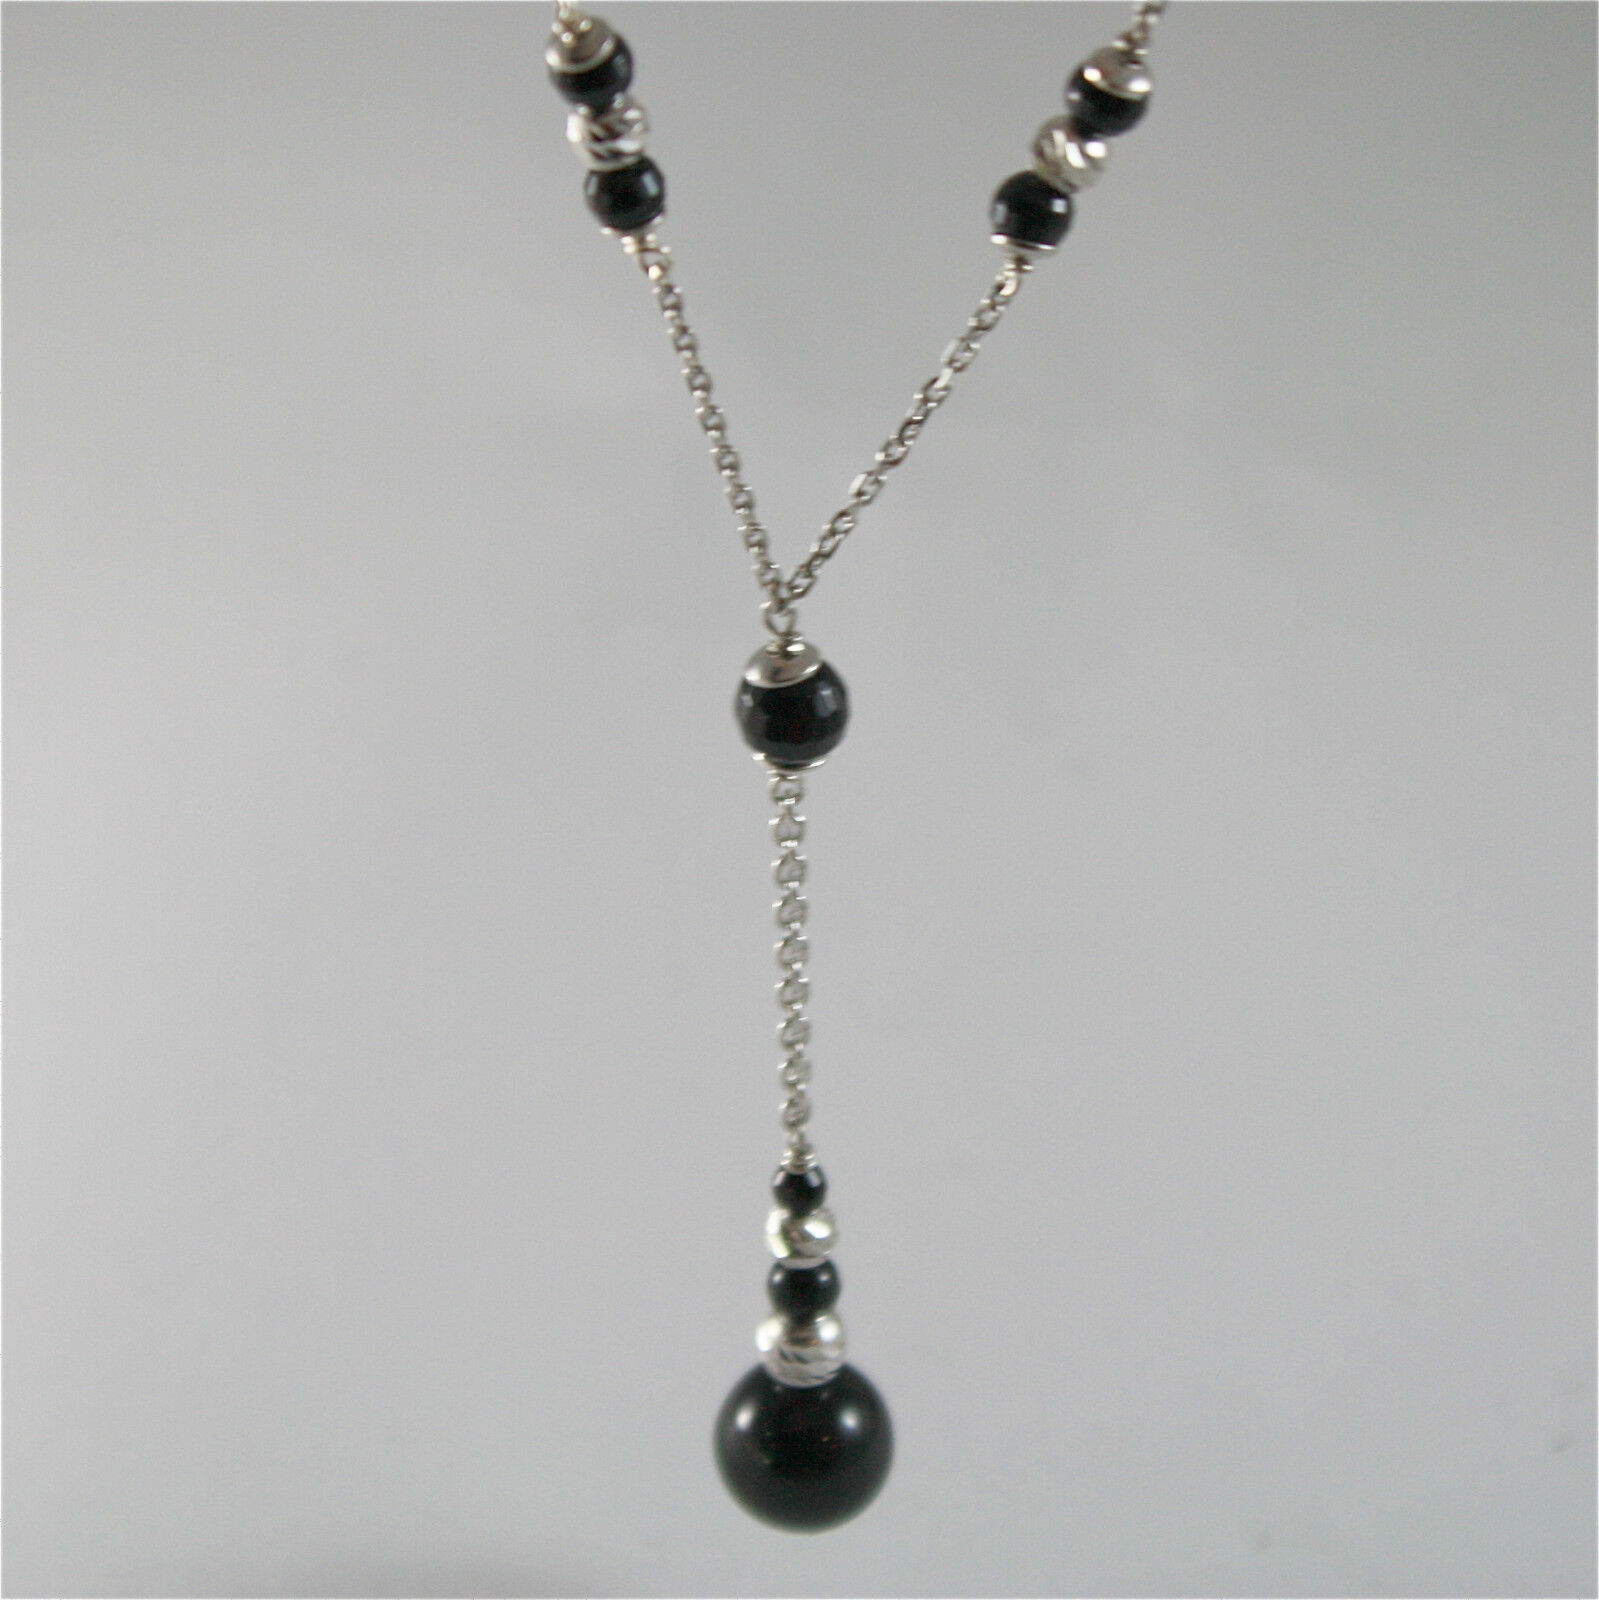 925 SILVER NECKLACE WITH 8 MM ROUND ONYX AND FACETED BALLS